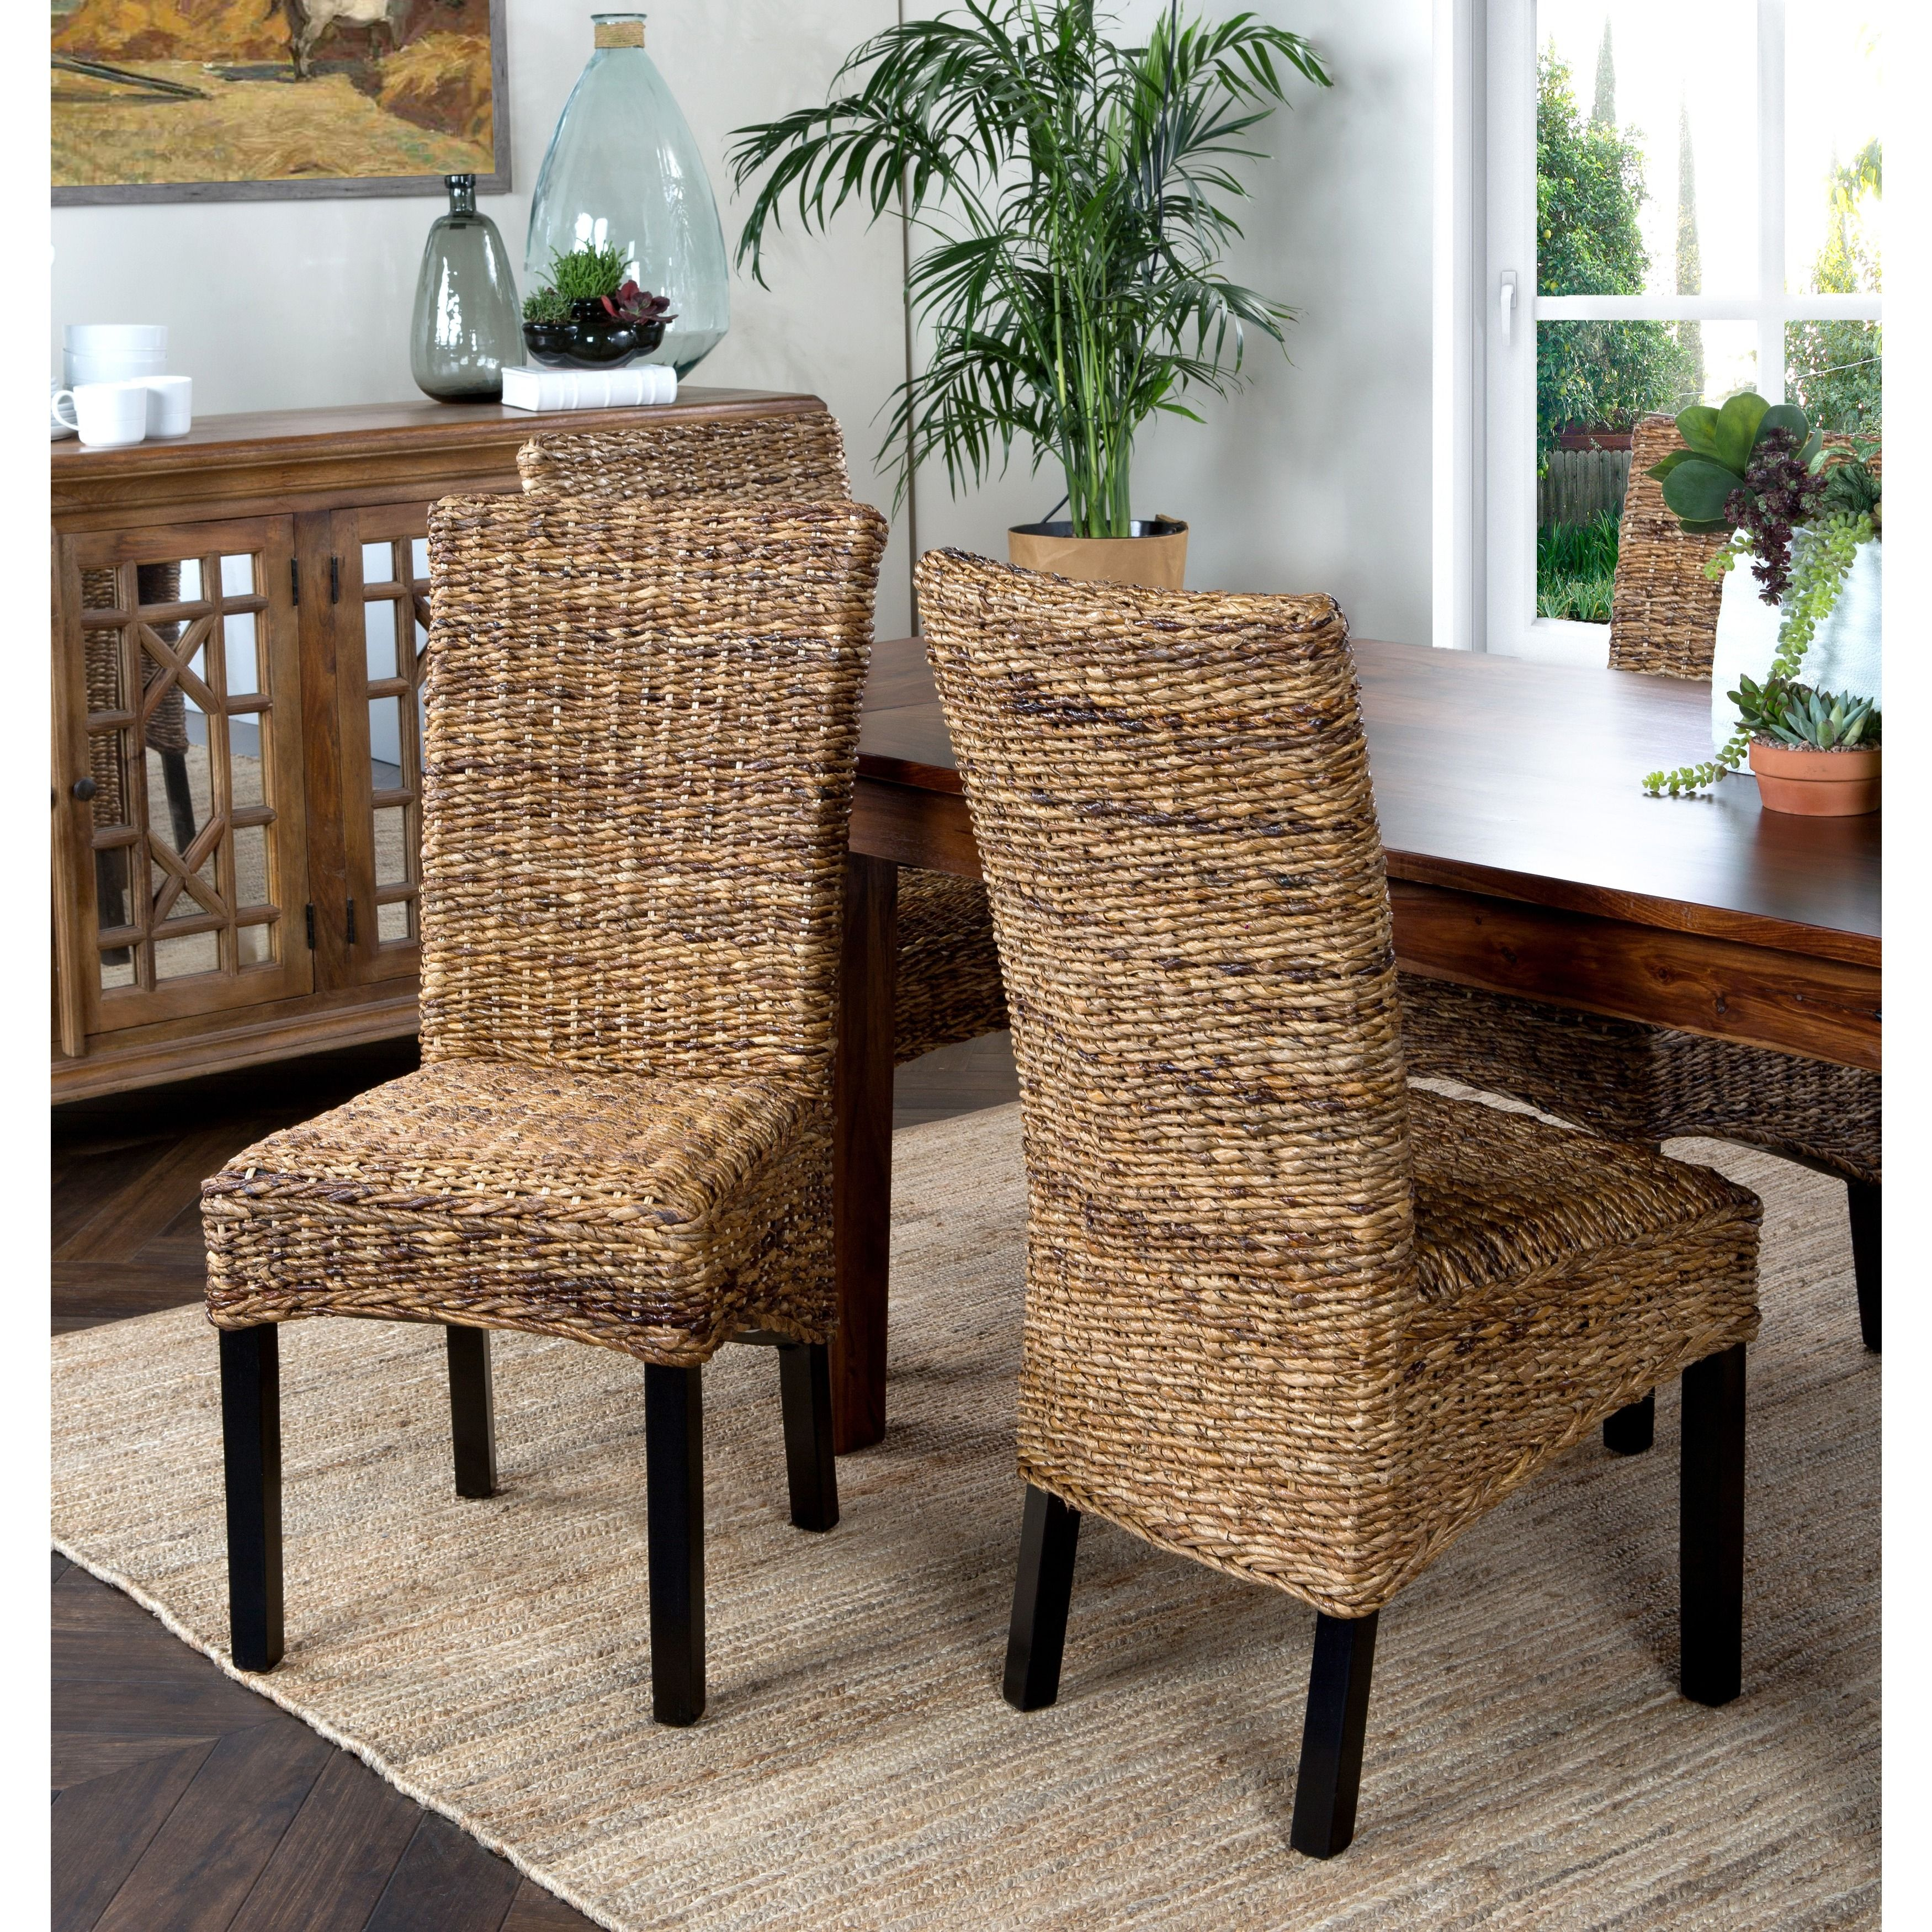 This abaca dining chair gives your house a more homey feel ...